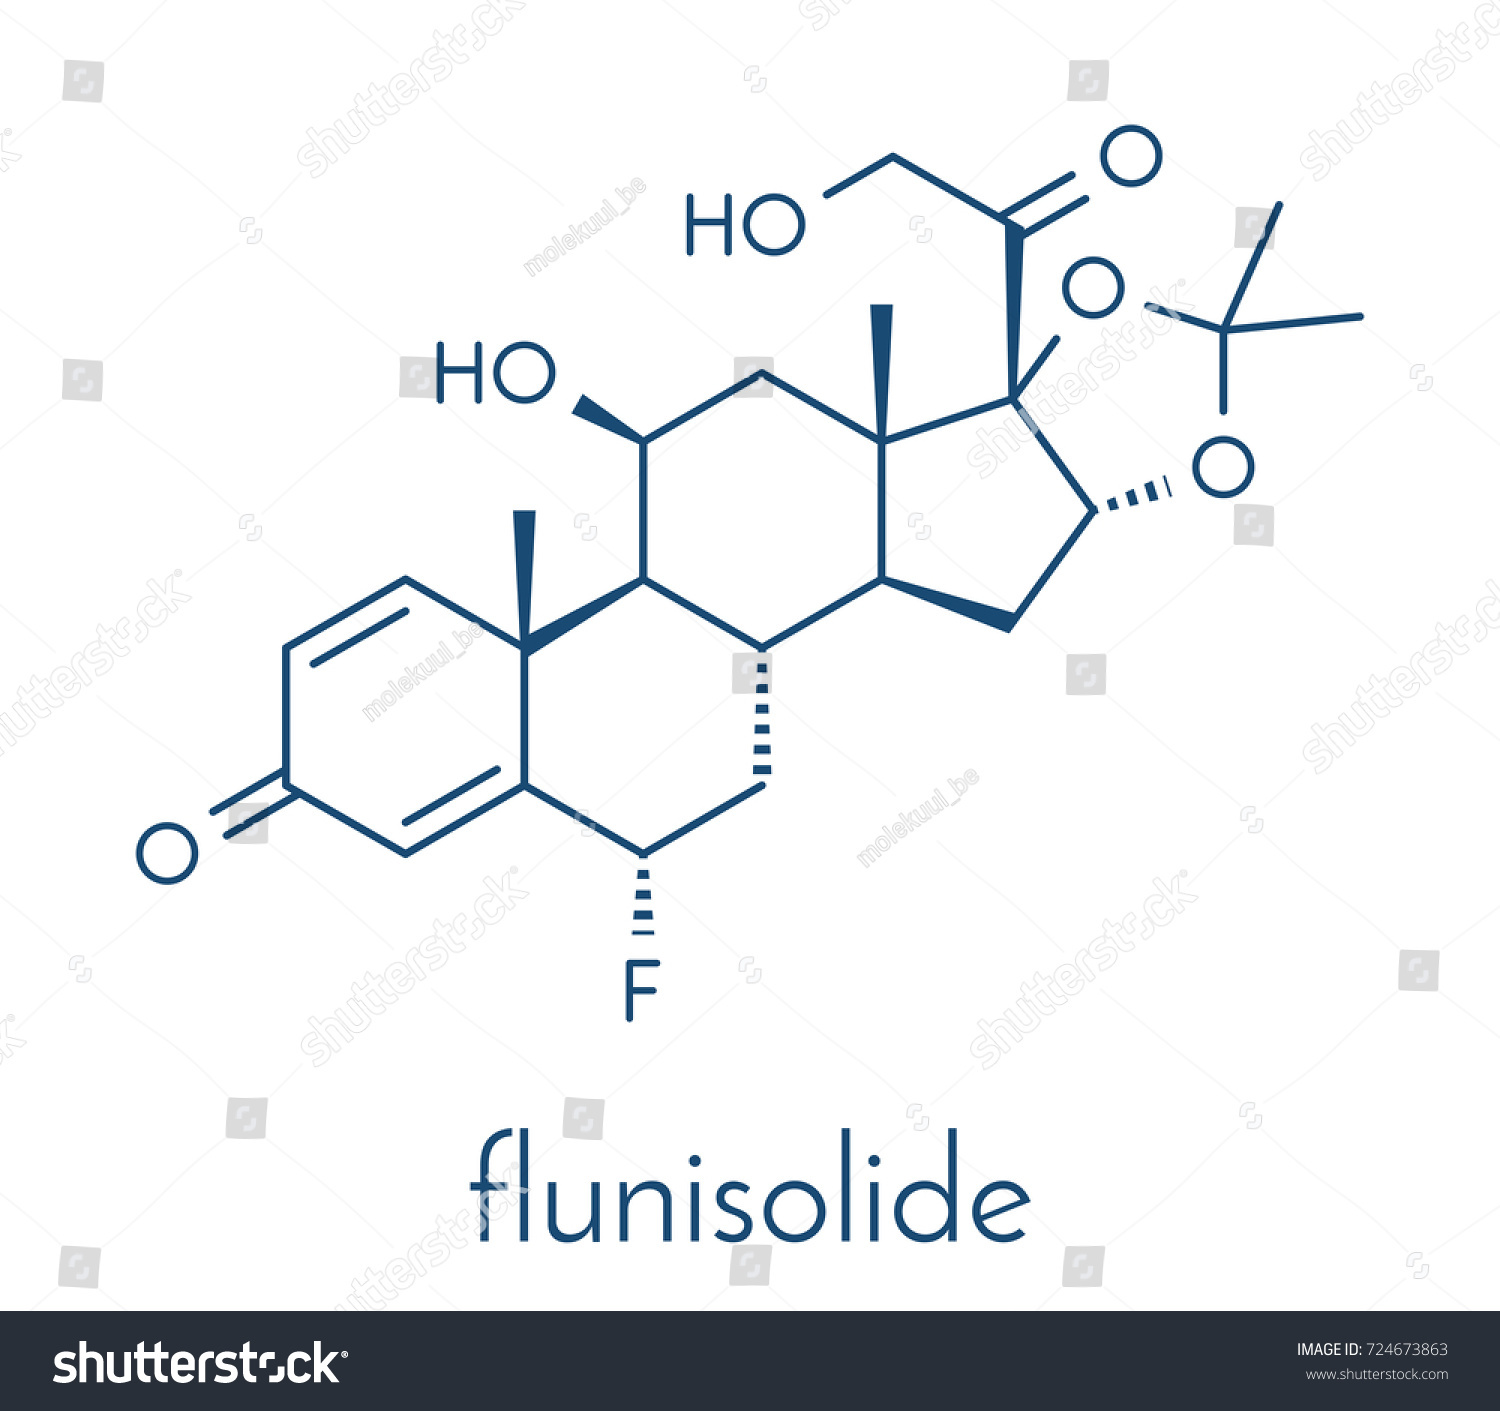 Discussion on this topic: Flunisolide, flunisolide/